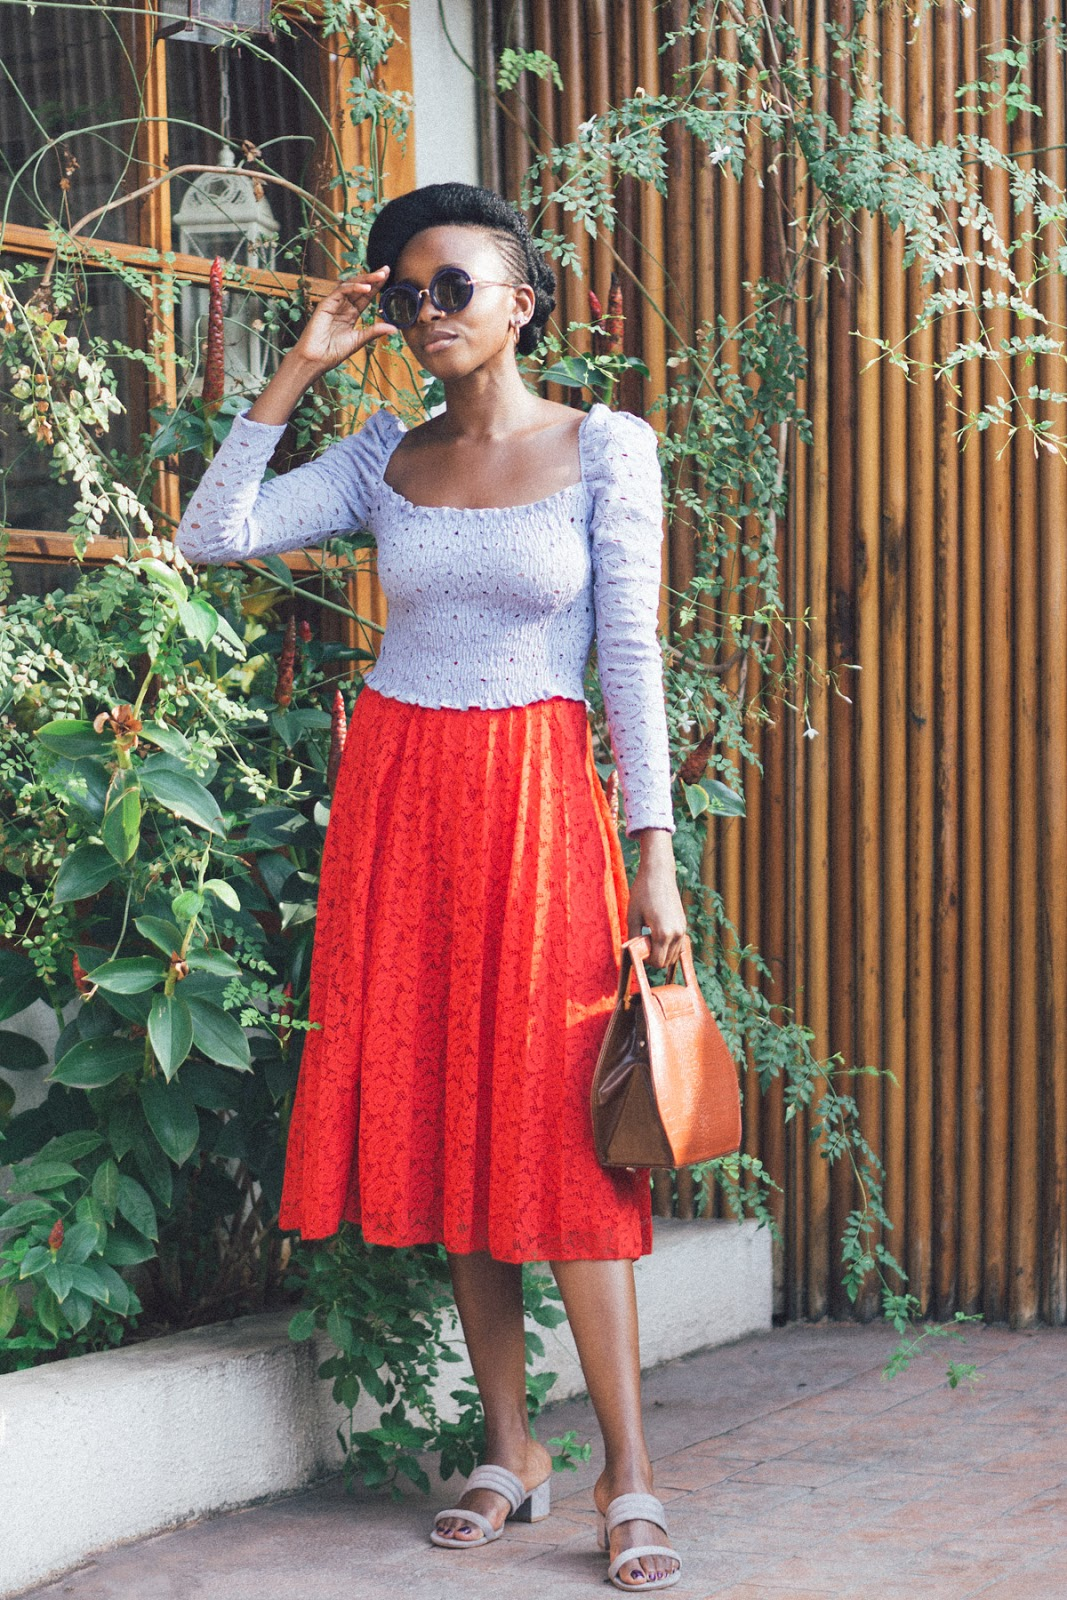 asos skirt, topshop shoes, lekki, arts and crafts market